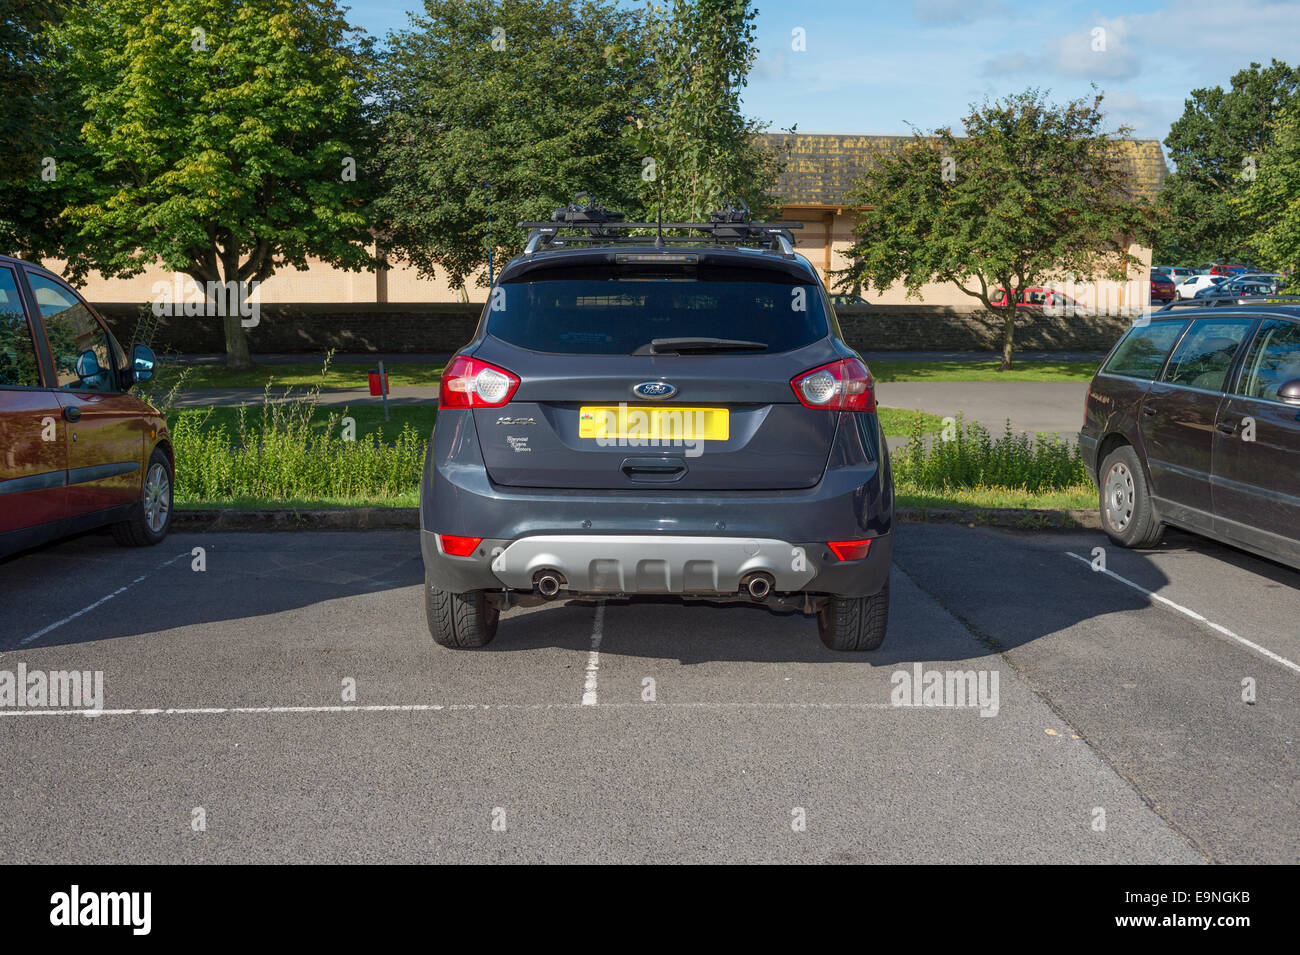 Bad Parking: A 4x4 car badly parked straddling two parking bays in a car park UK (number plate blurred) - Stock Image